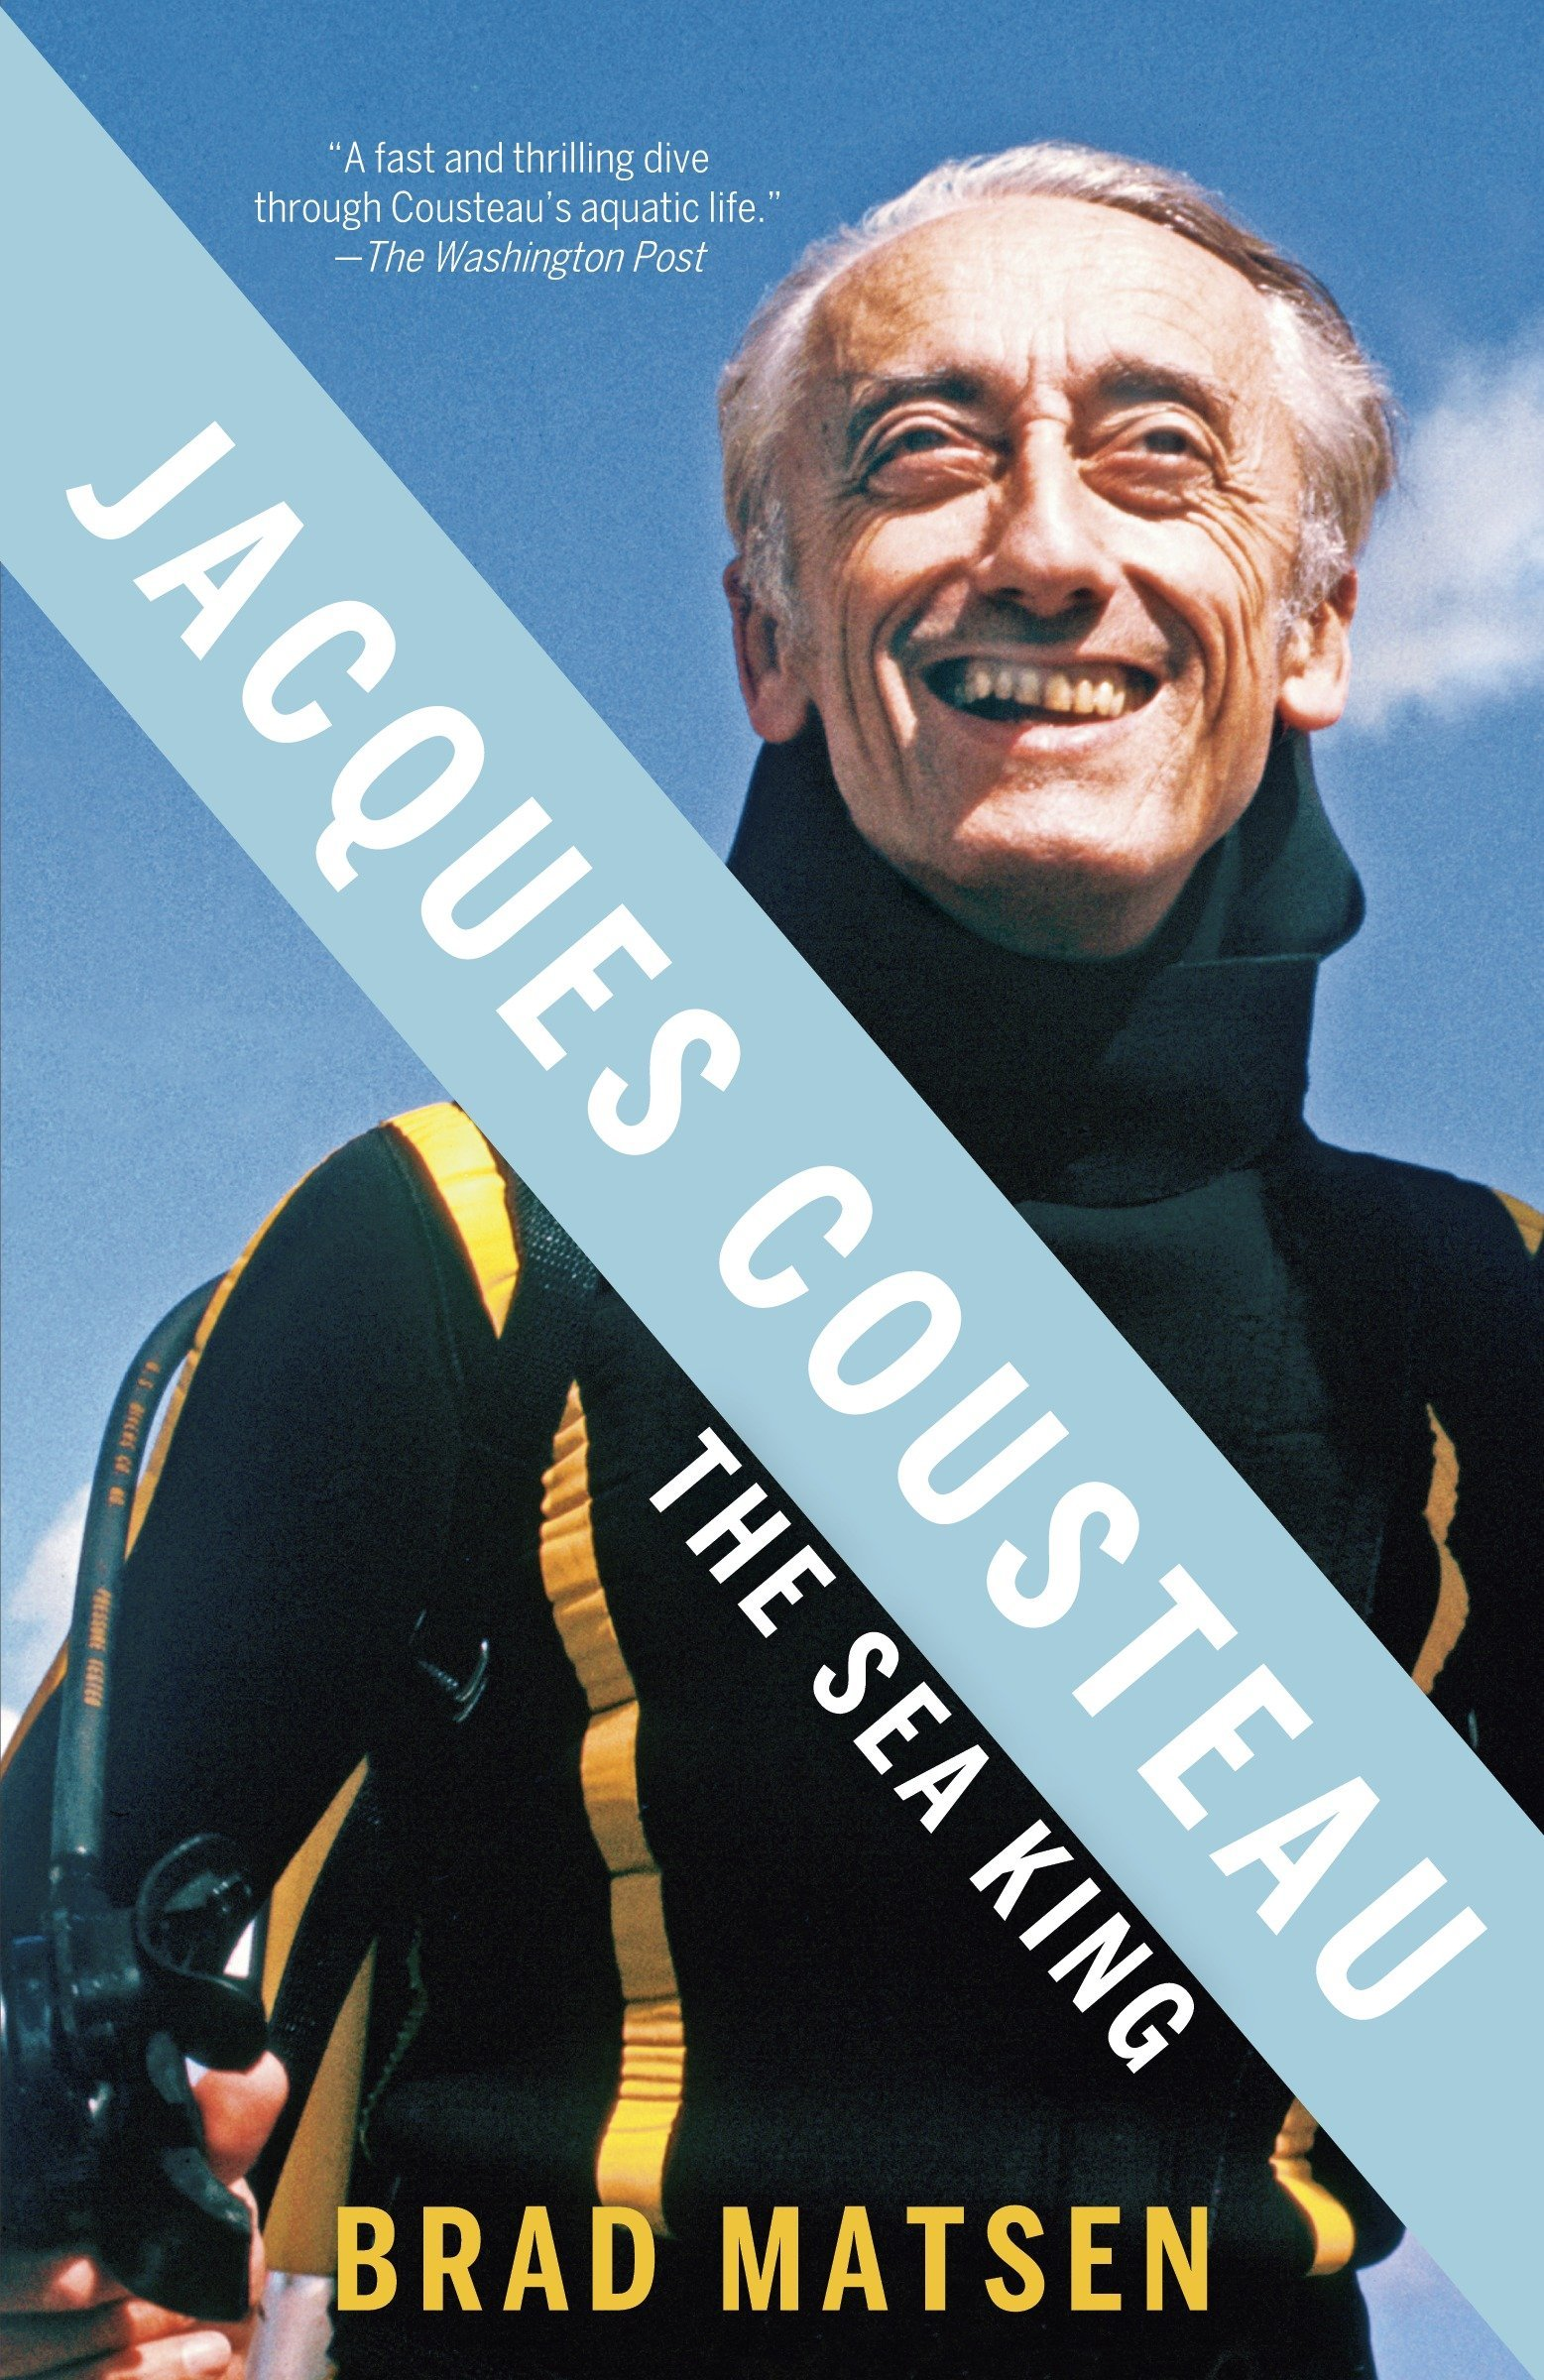 Jacques-Yves Cousteau: so comes sea glory 1